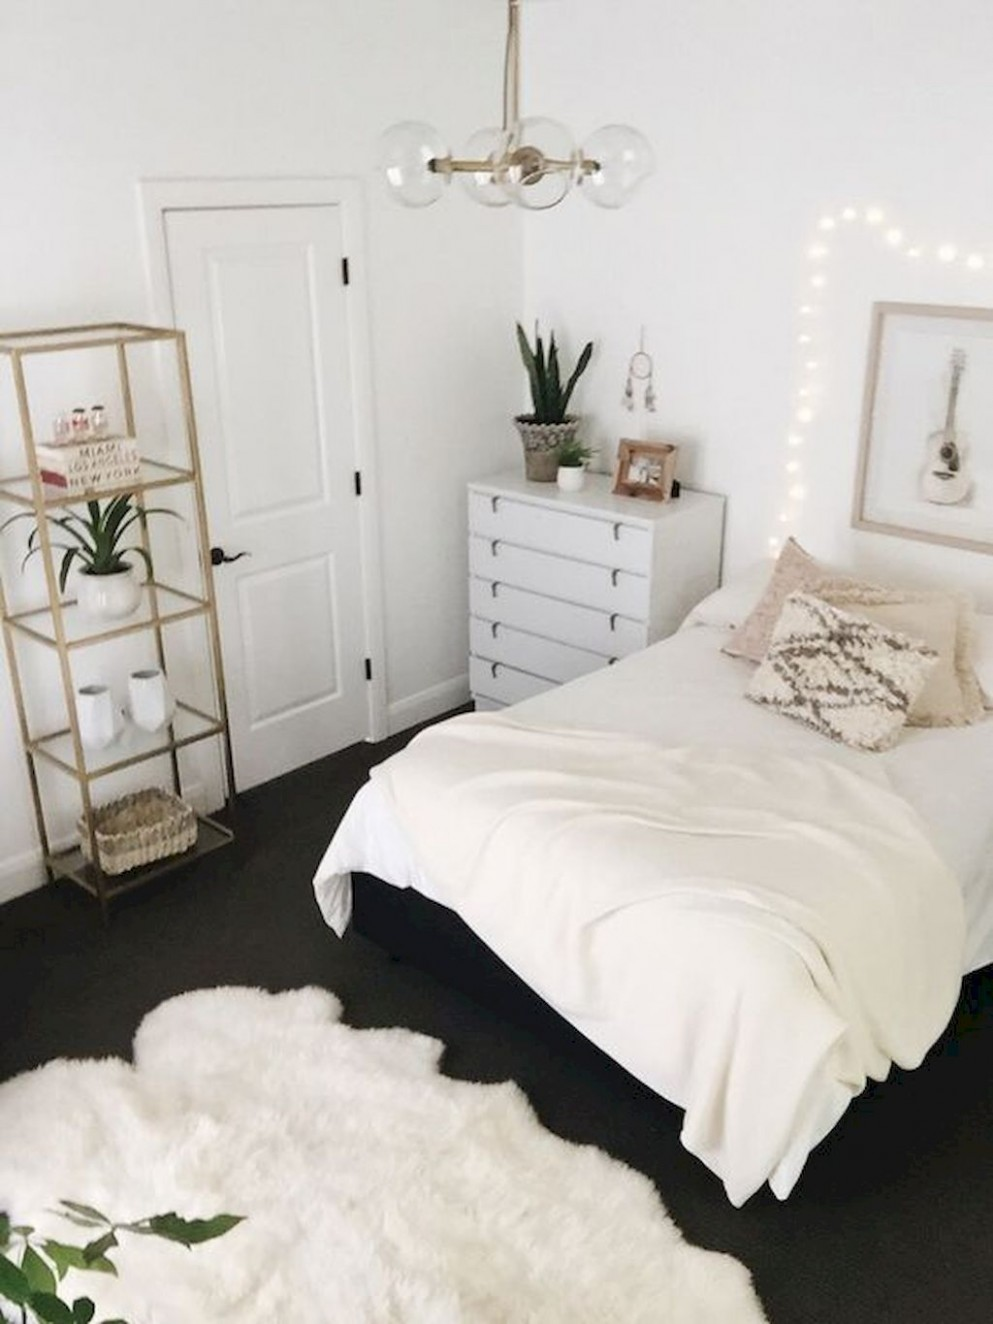 11 Perfect Small Bedroom Decorations - SWEETYHOMEE  Apartment  - Apartment Room Ideas Pinterest